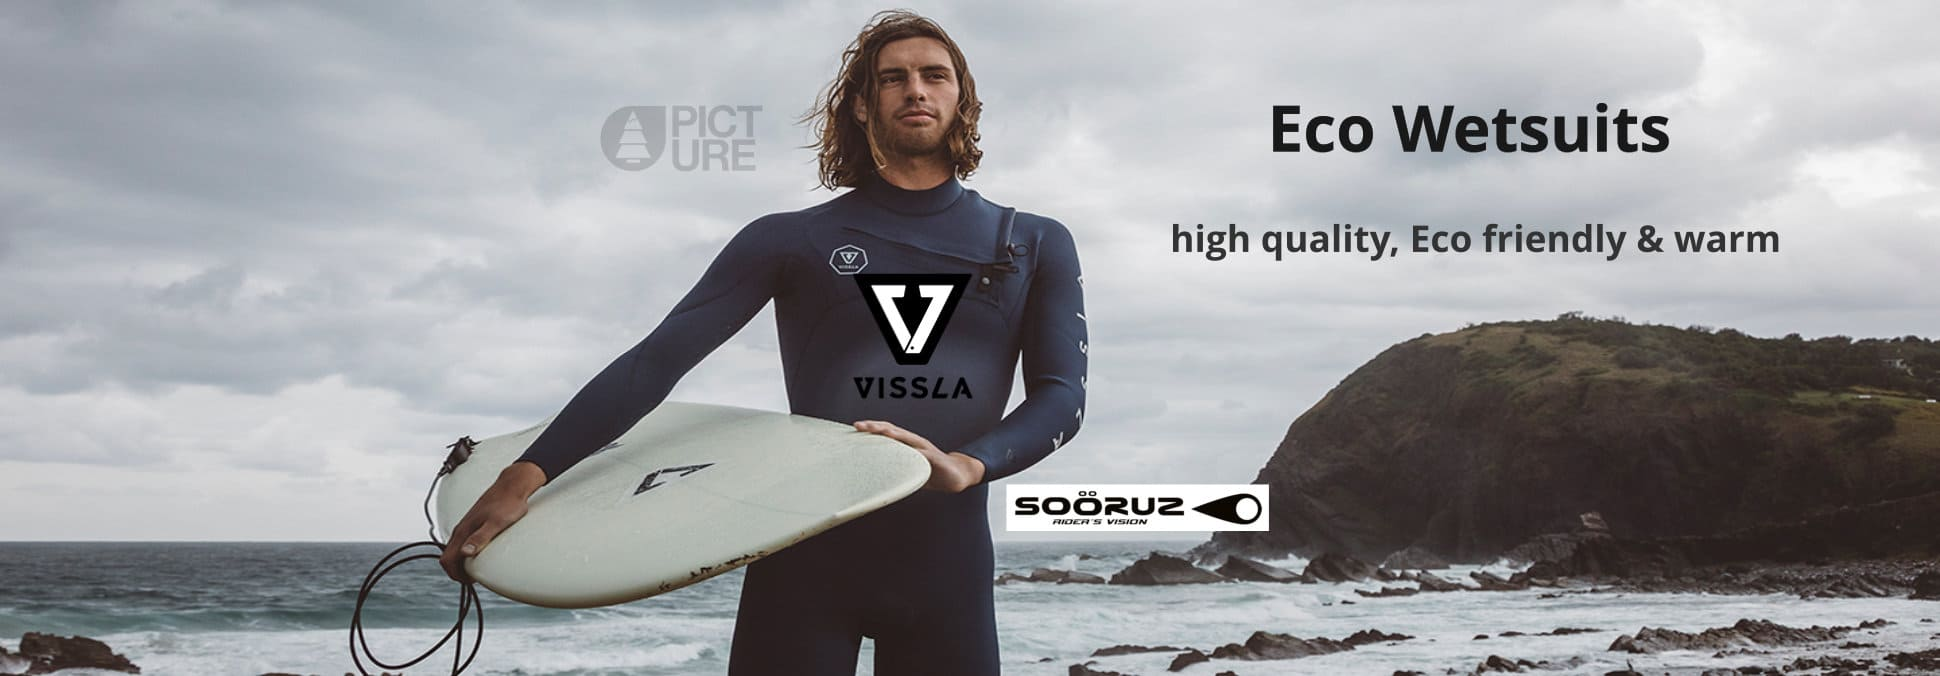 Eco Wetsuits